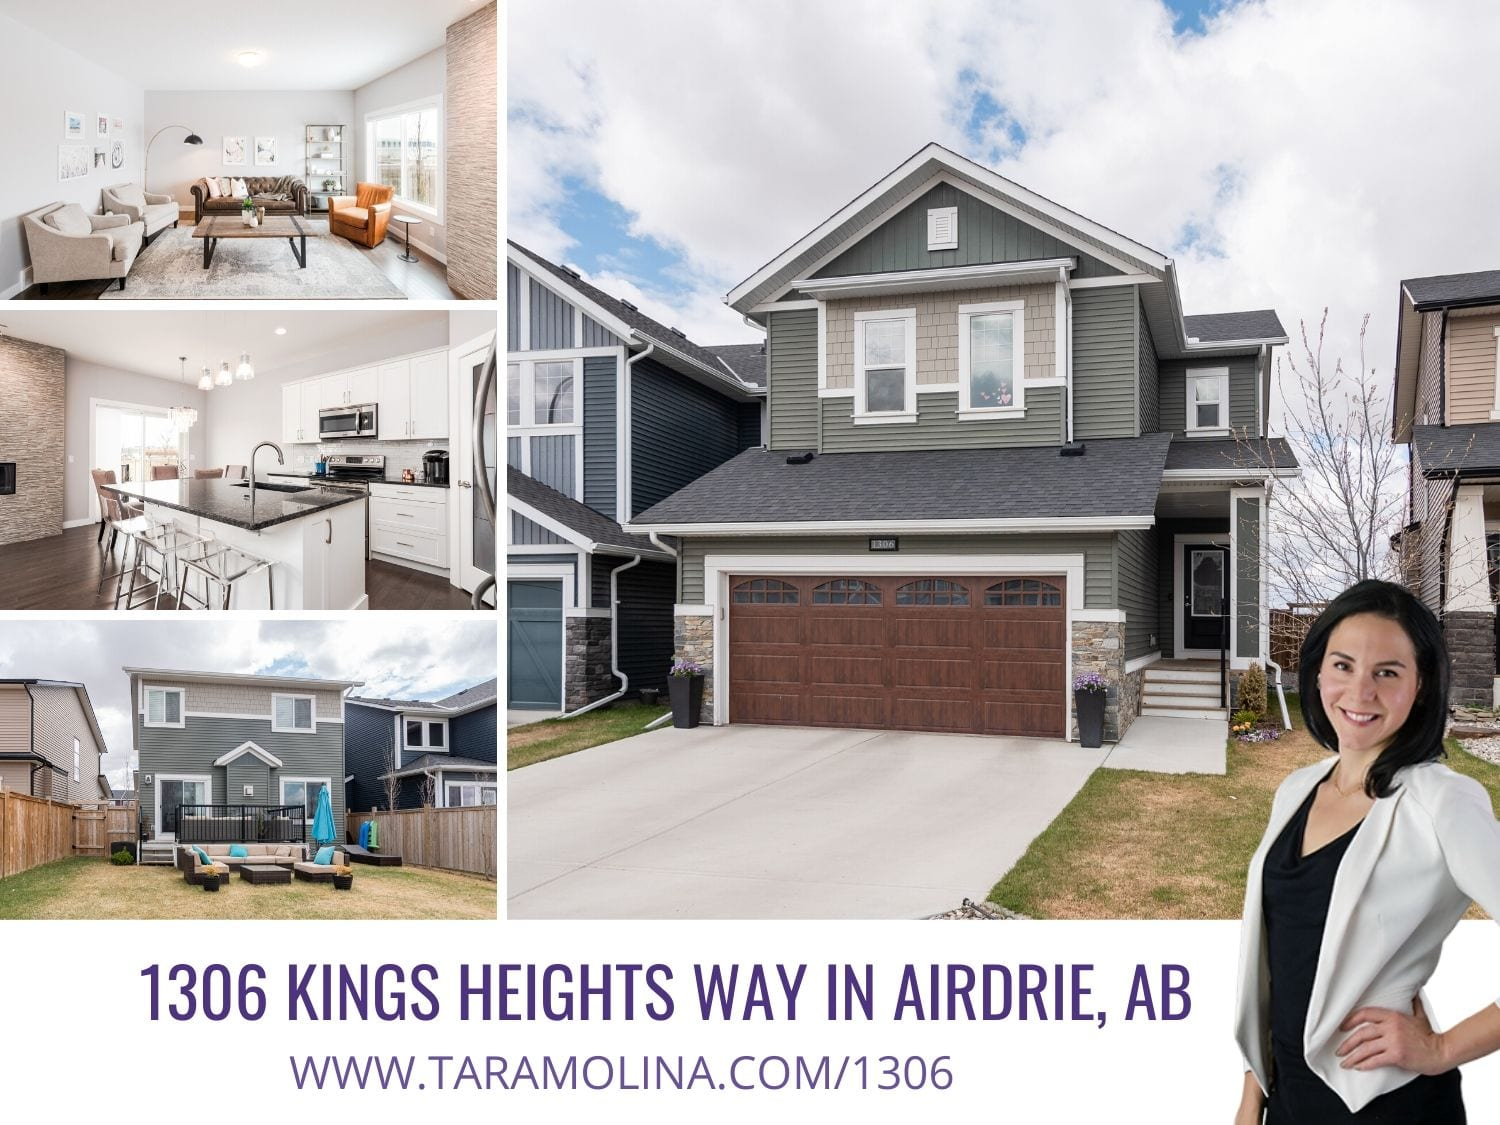 1306 Kings Heights Way in Airdrie